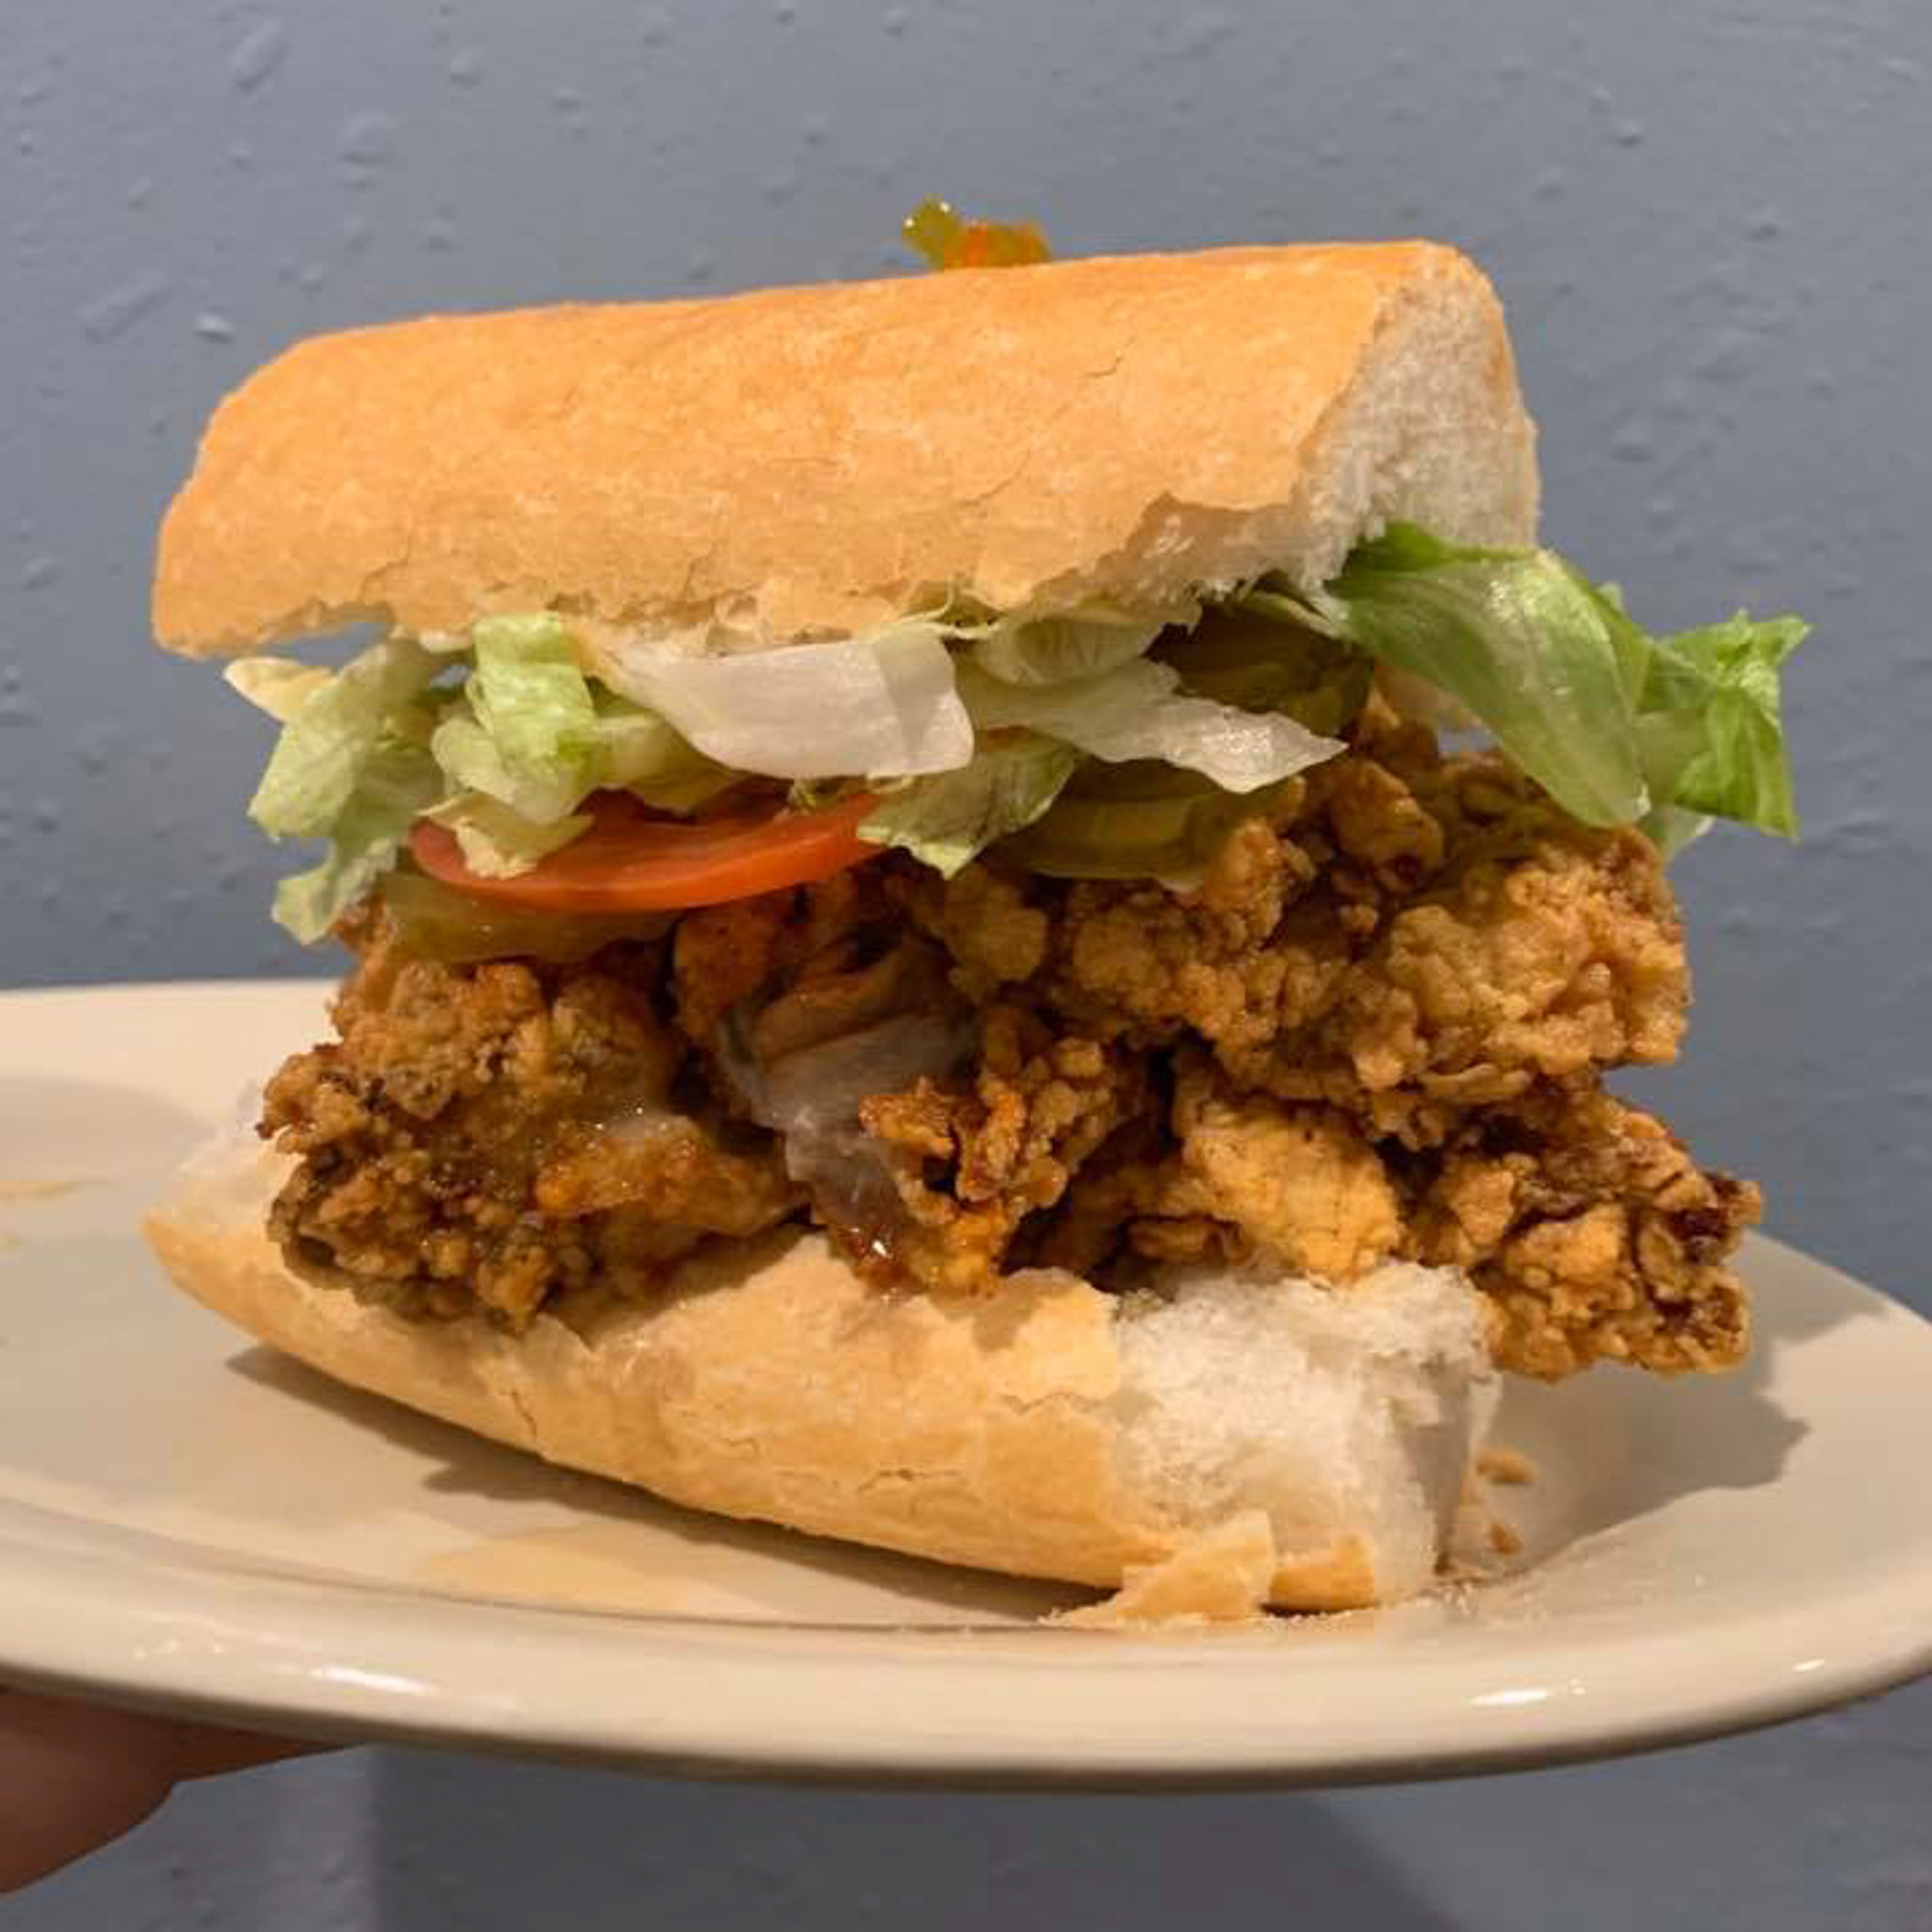 Po-boy at Harbour Seafood & Oyster Bar in New Orleans